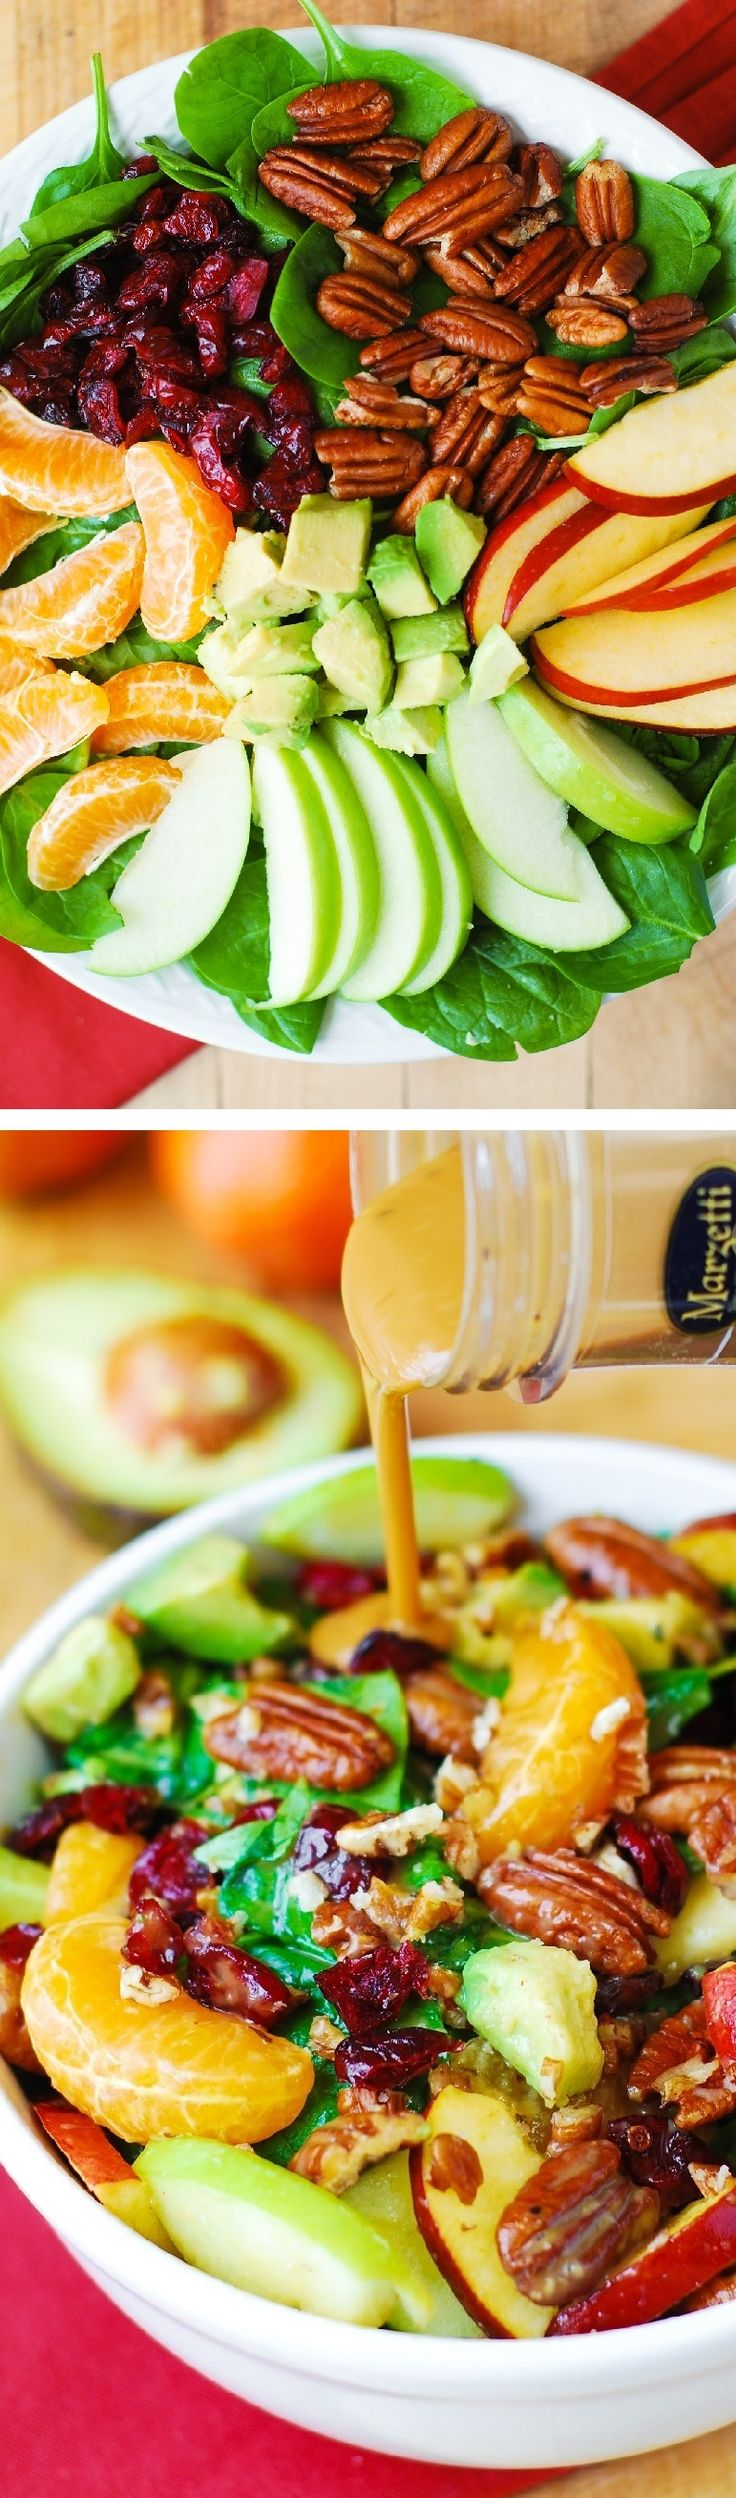 Apple Cranberry Spinach Salad Recipe.  Ingredients include Pecans, Avocados (and Balsamic Vinaigrette Dressing) - delicious, healthy, vegetarian, gluten free recipe! #Marzetti #BH #sponsored